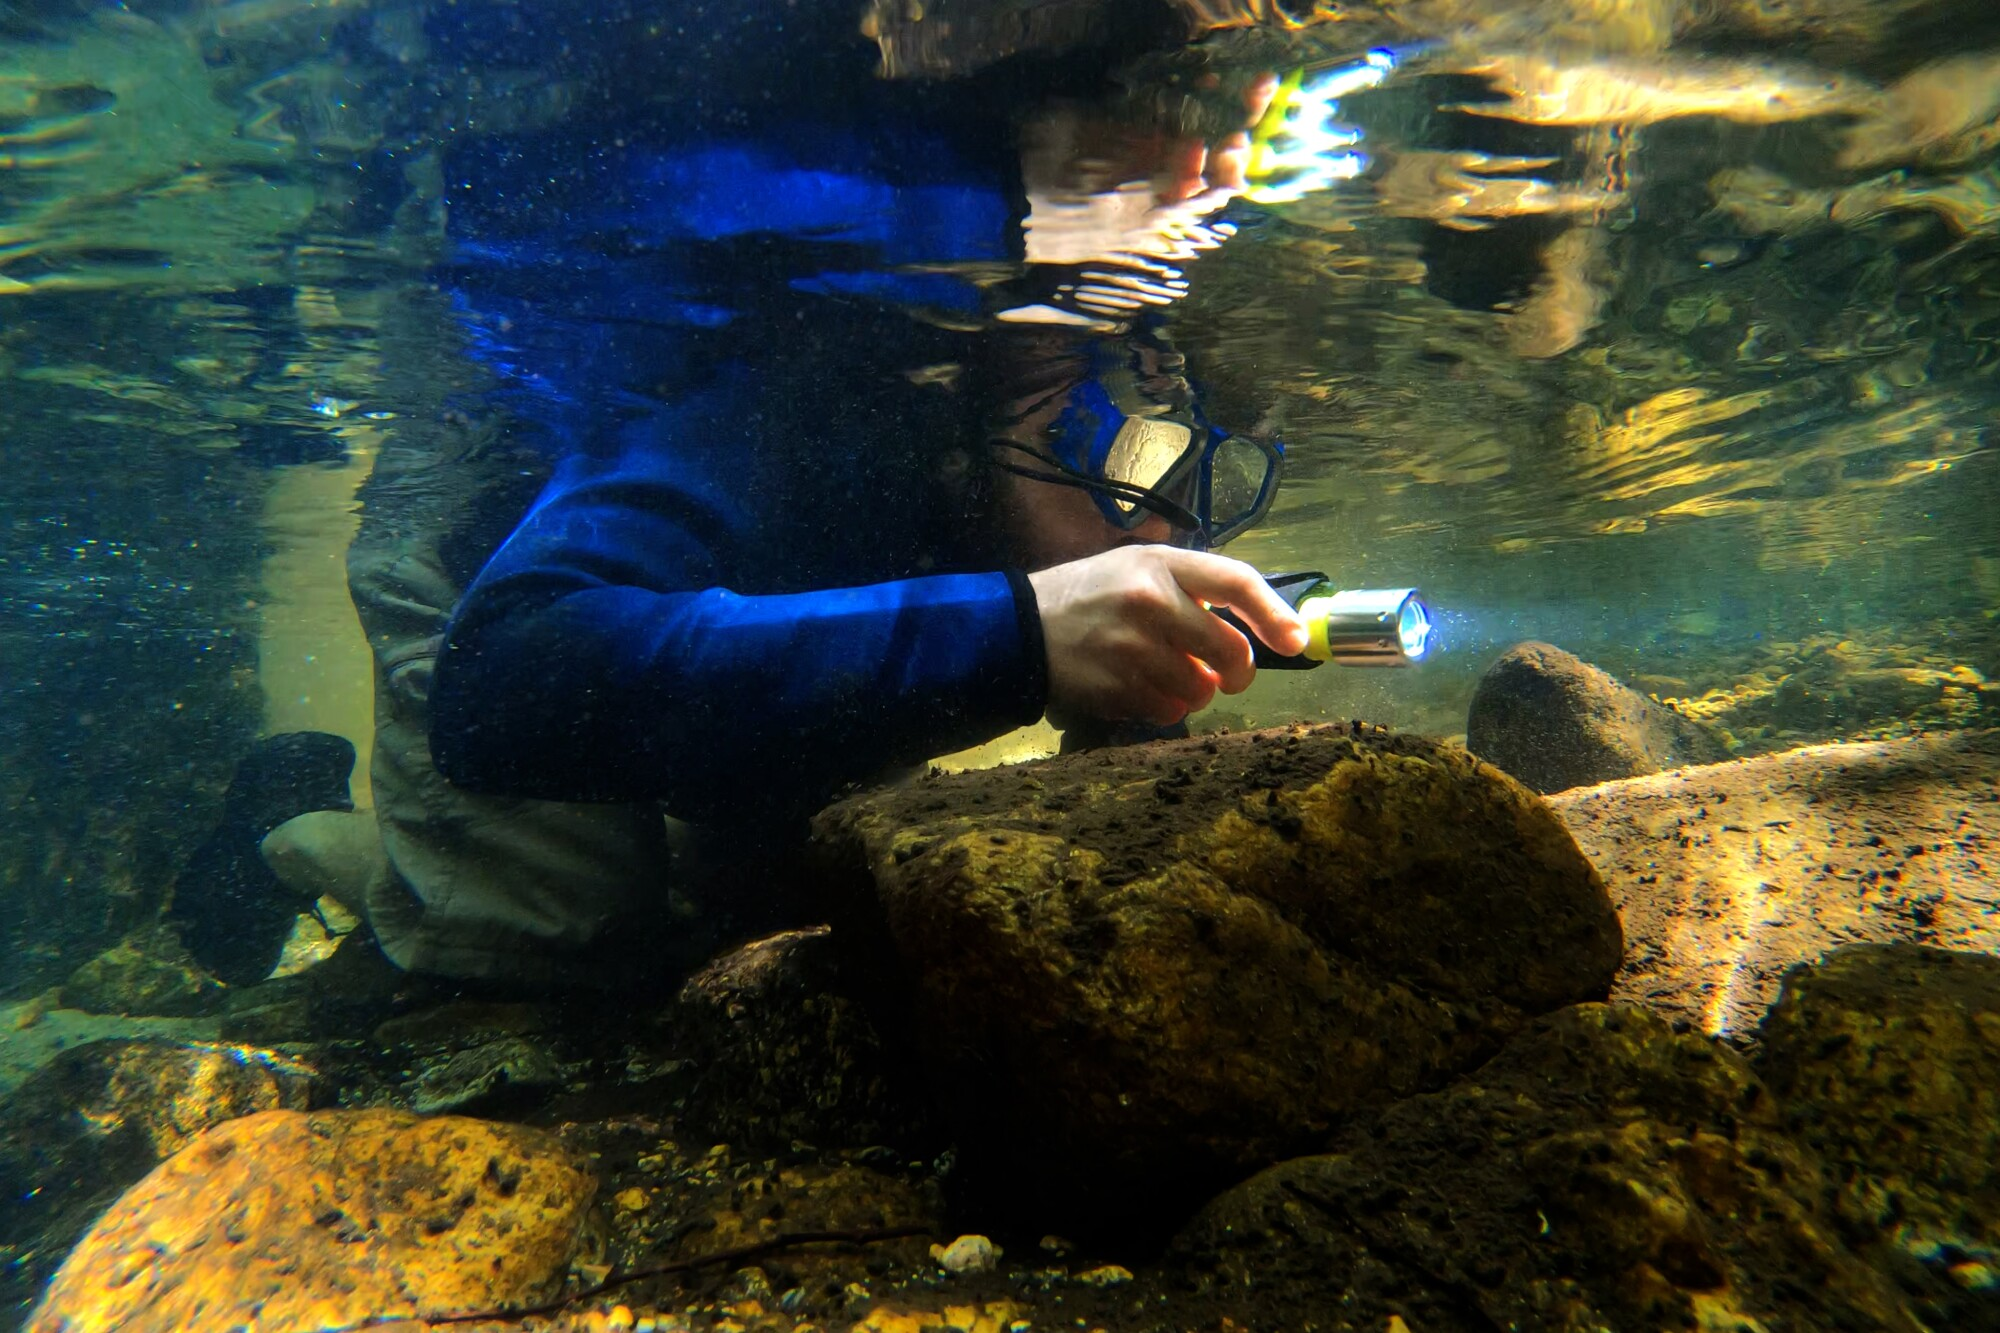 Angel Pinedo snorkels in shallow water to do a survey of rainbow trout and other fish in the Arroyo Seco.